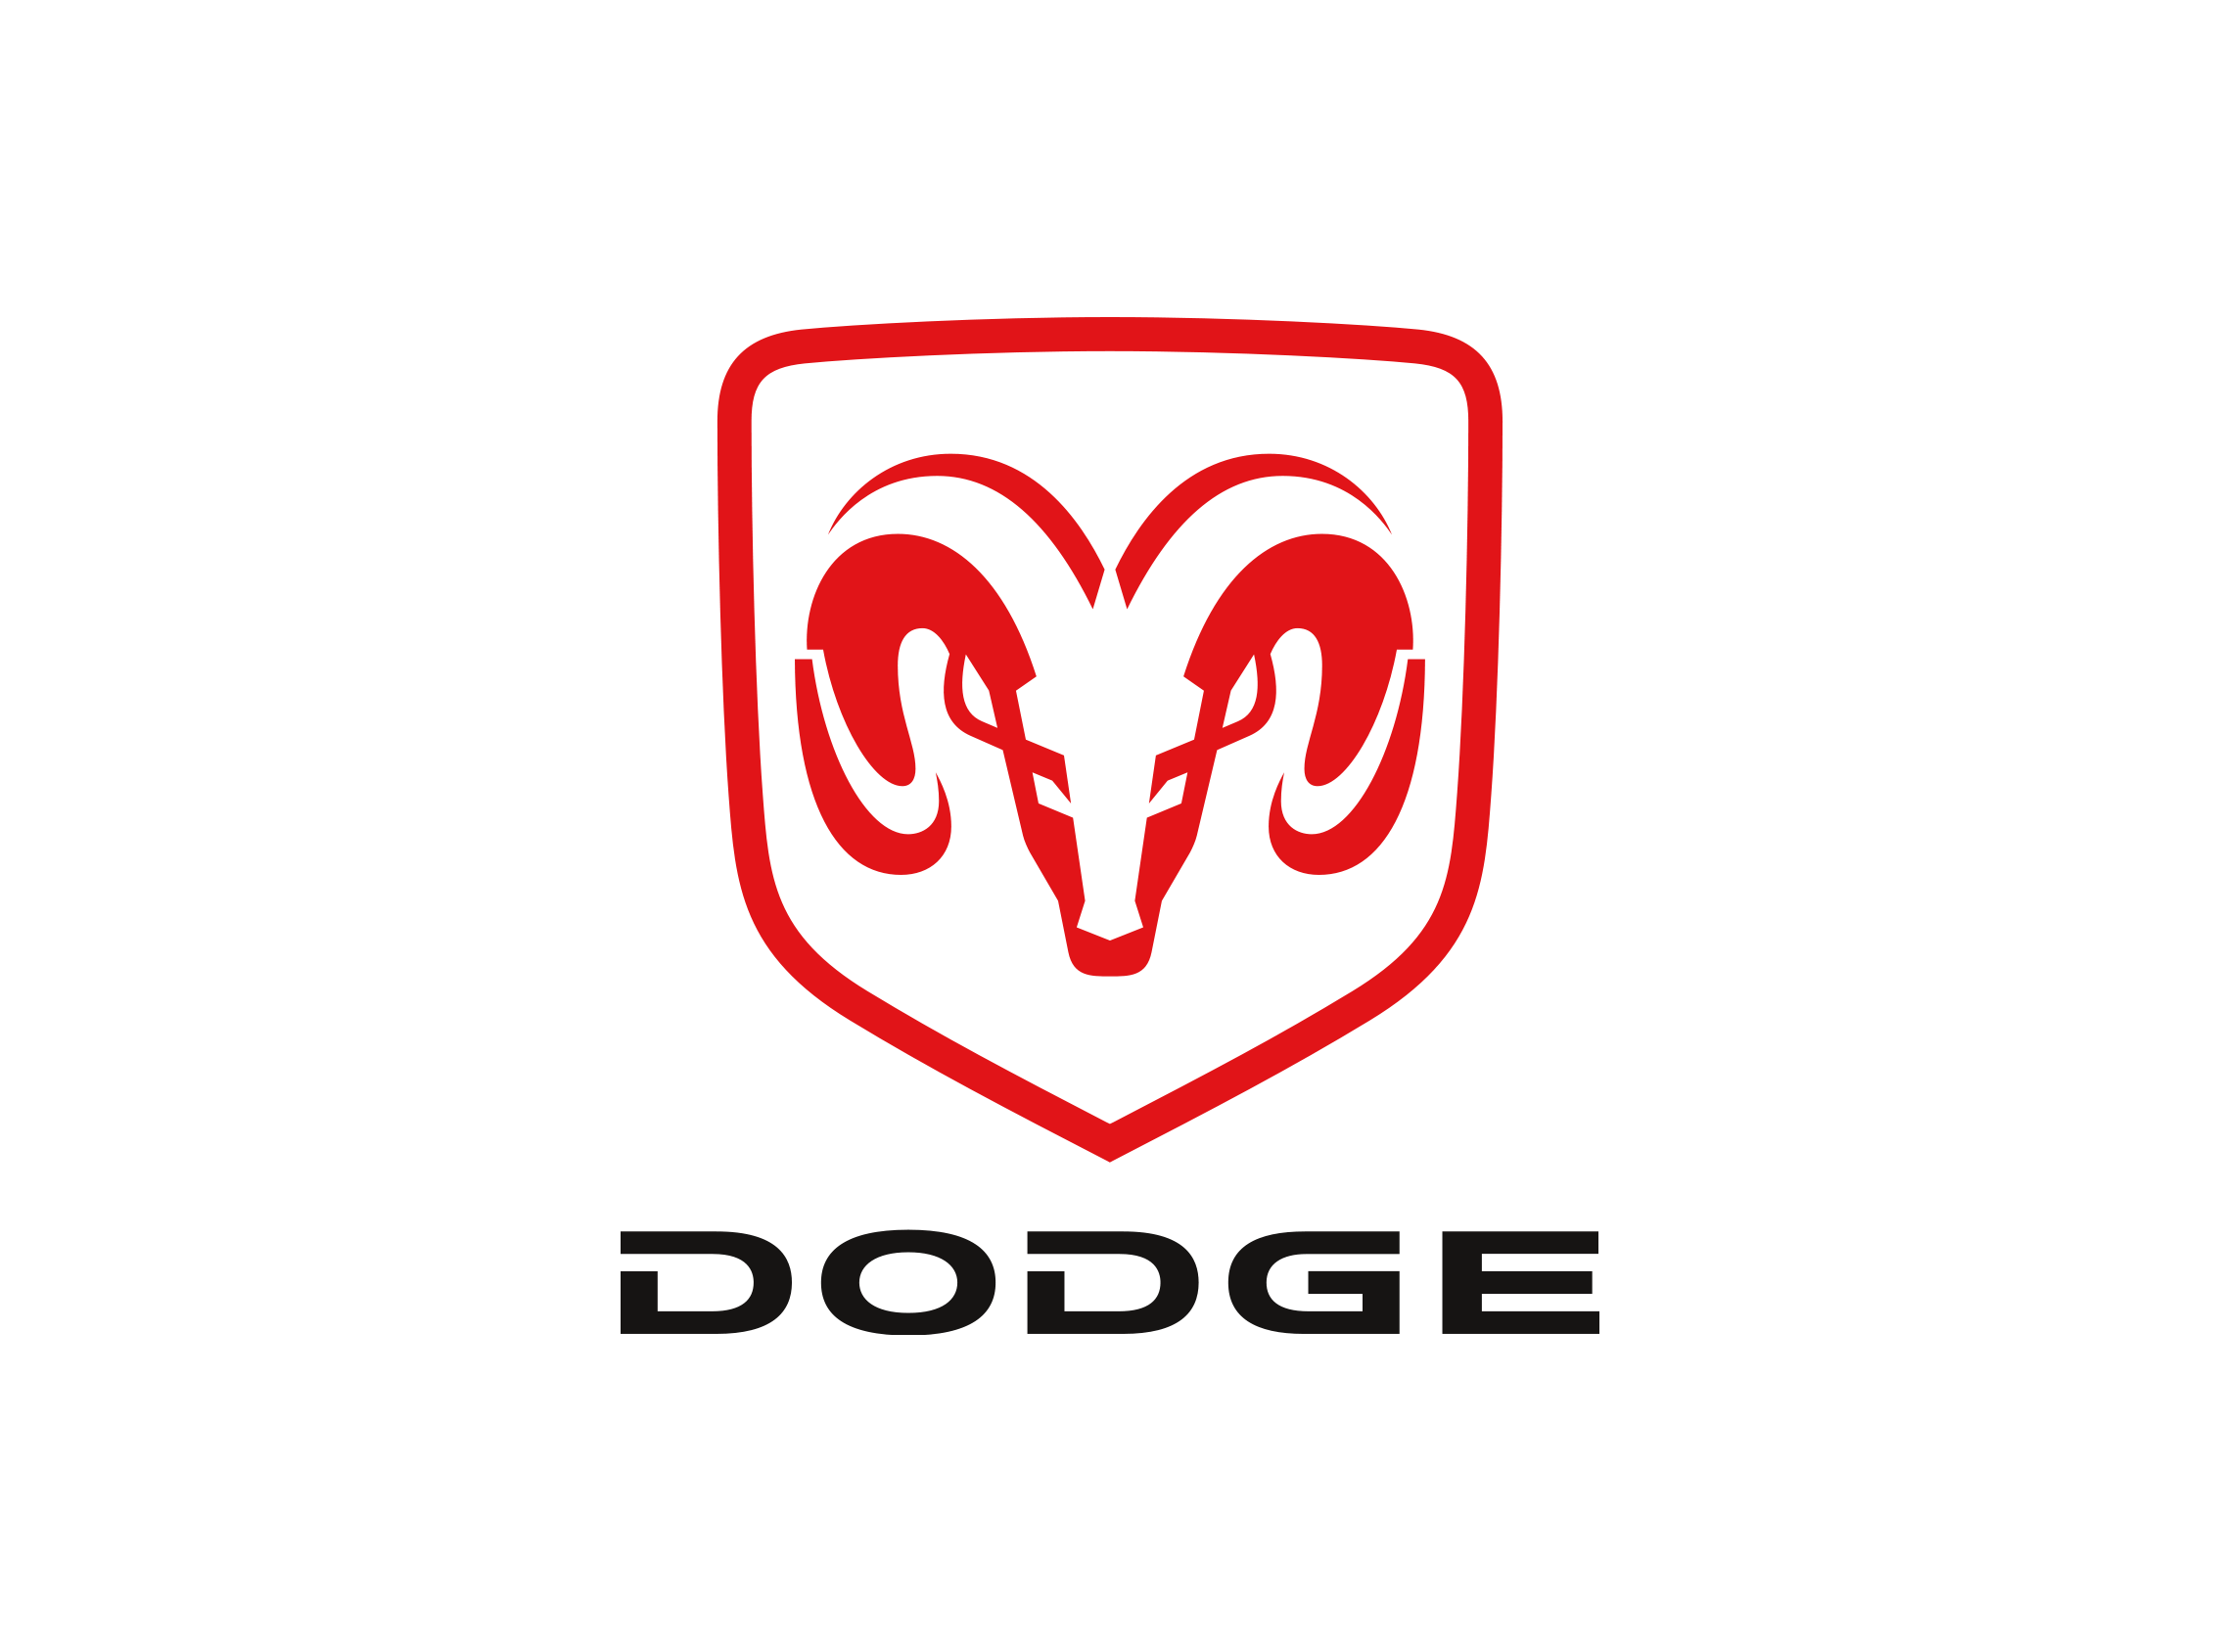 DODGE MOTOR IMPORT BRANDS VOITURE IMPORT USA MIAMI IMPORT VOITURE EUROP IMPORT USA MOTOR IMPORT7 - BUGATTI importation voiture des Etats Unis BUGATTI votre mandataire automobile usa